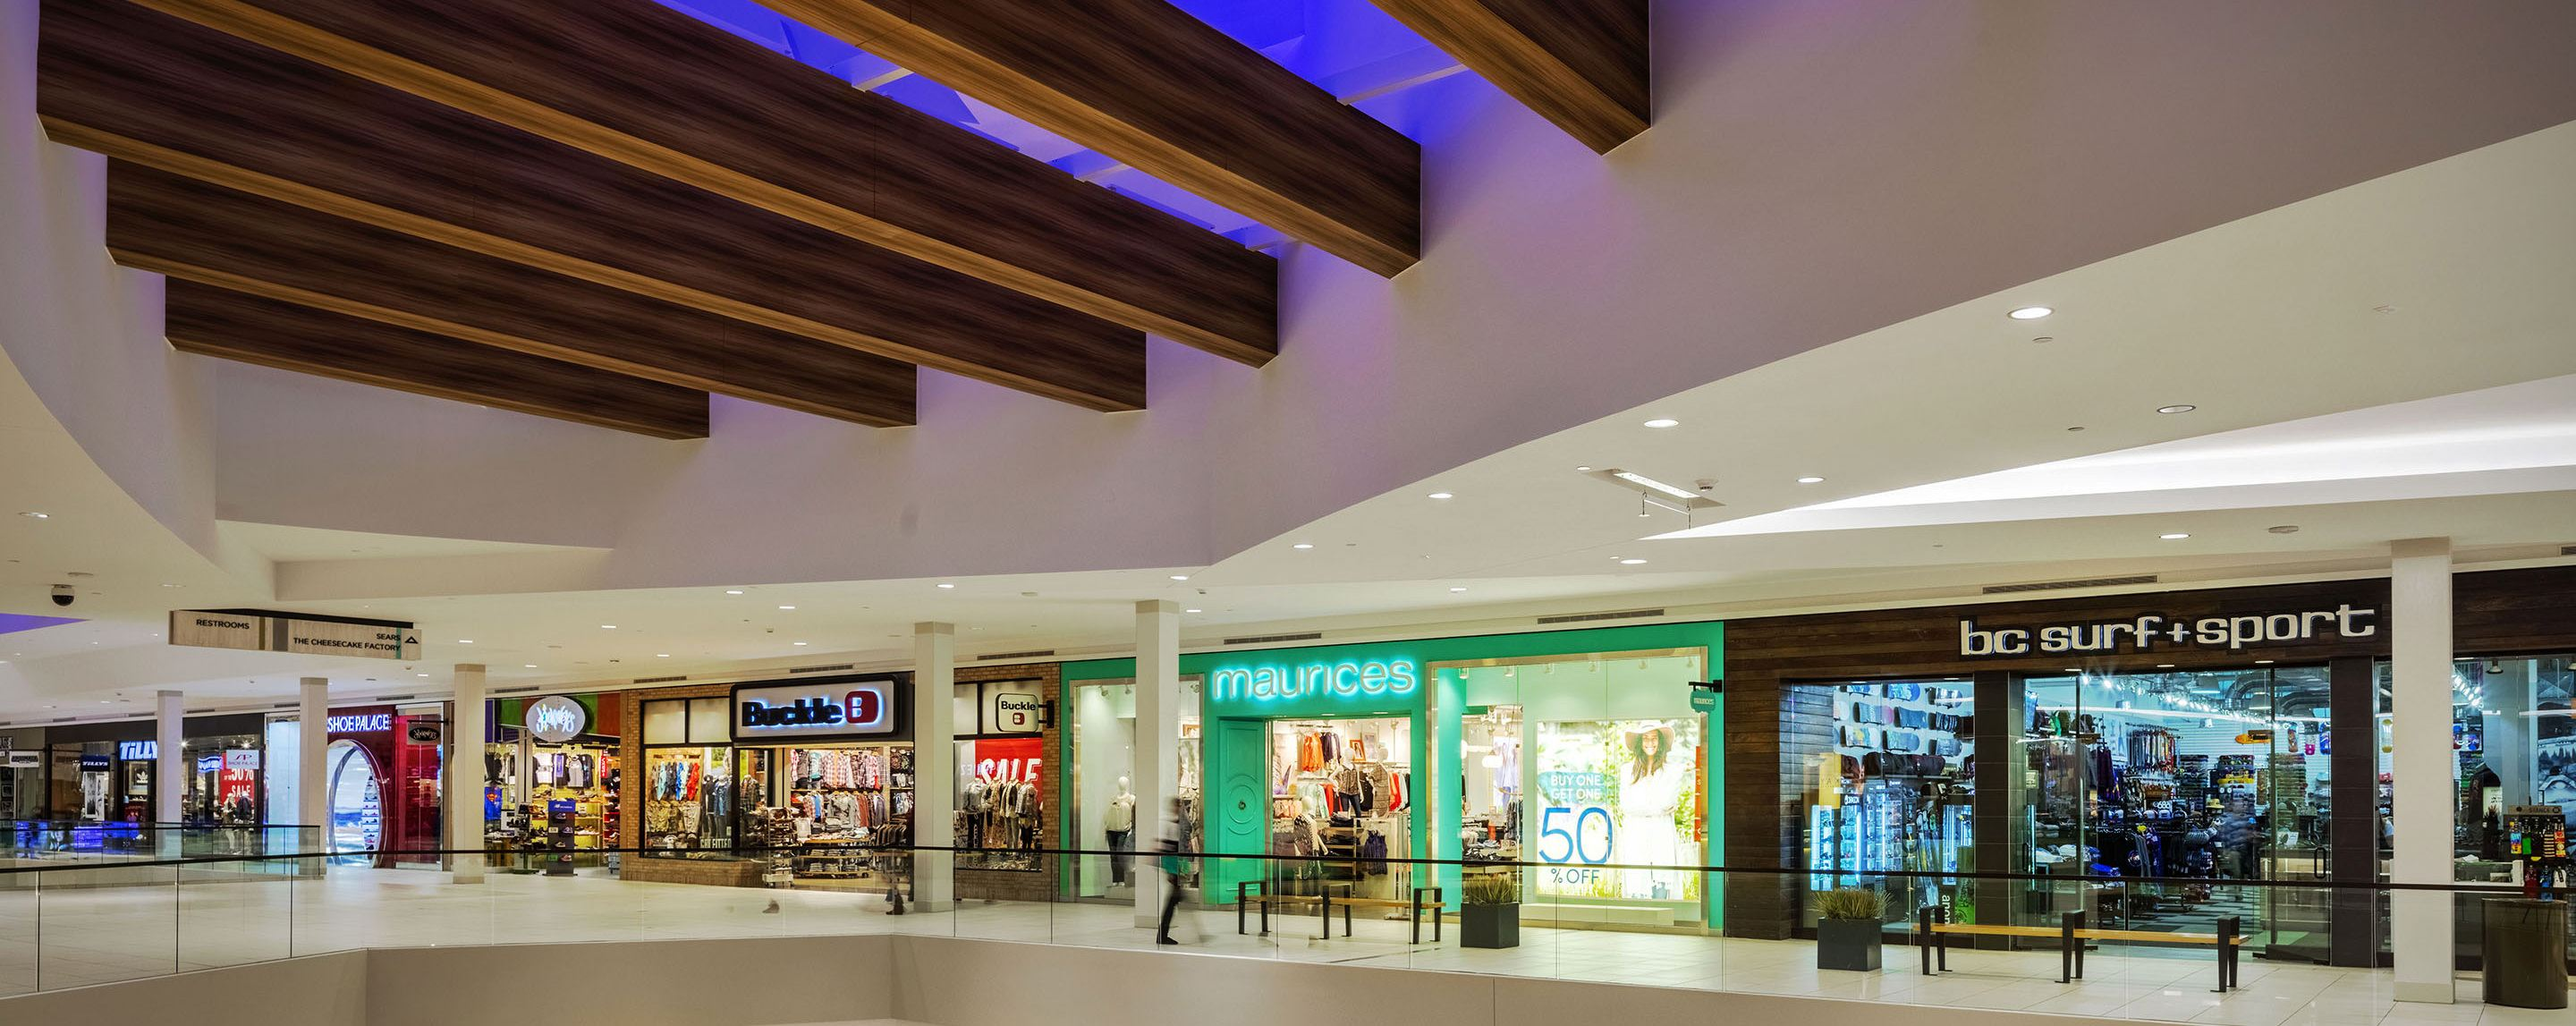 The second floor of this mall is home to Buckle, maurices, Tillys, Shoe Palace, BC Surf and Sport and Journeys retail stores.